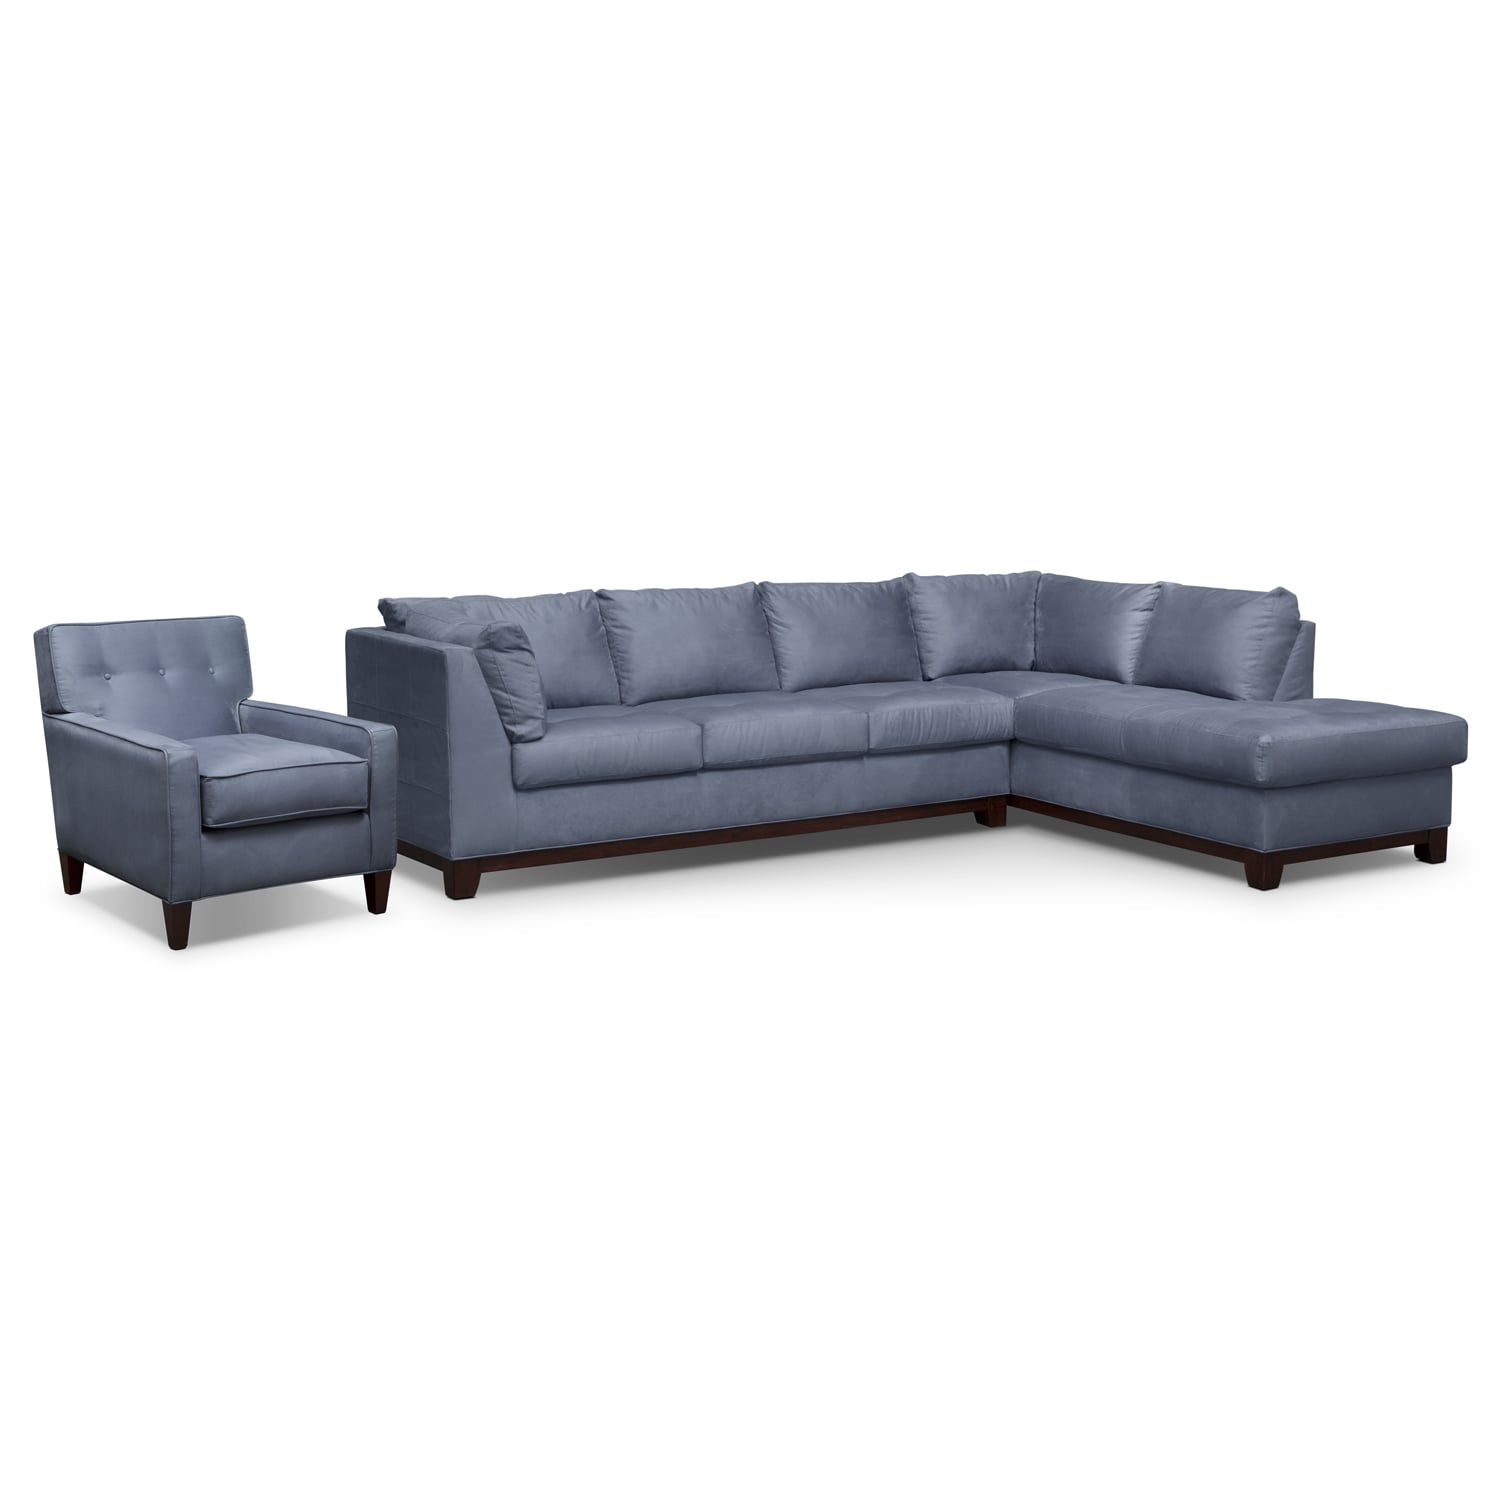 Soho 2 piece sectional with right facing chaise and chair for 2 piece sectionals with chaise